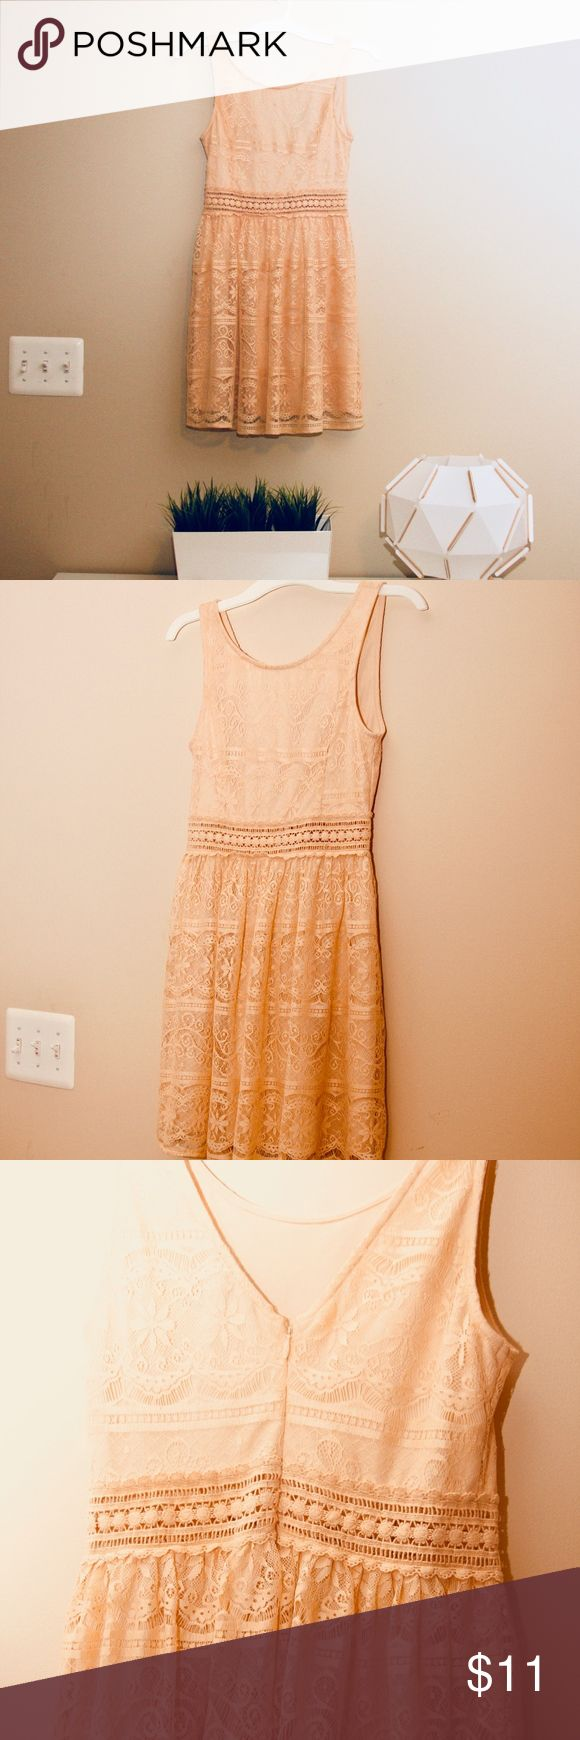 """Forever 21 Mini/Midi Peach Lace Dress XS to Small Forever 21 Mini/Midi Peach Lace Dress Great for weddings, casual events, or a night out on the town! Never worn, however tags are not attached. The 3rd picture shows the zip enclosure on the back of the dress  I would suggest this dress for someone who has a smaller chest. Even though it's a small, it fits more like an extra small. 32.5""""  in length from the top of the strap, 27"""" in width from the waist band The waist band in the middle…"""